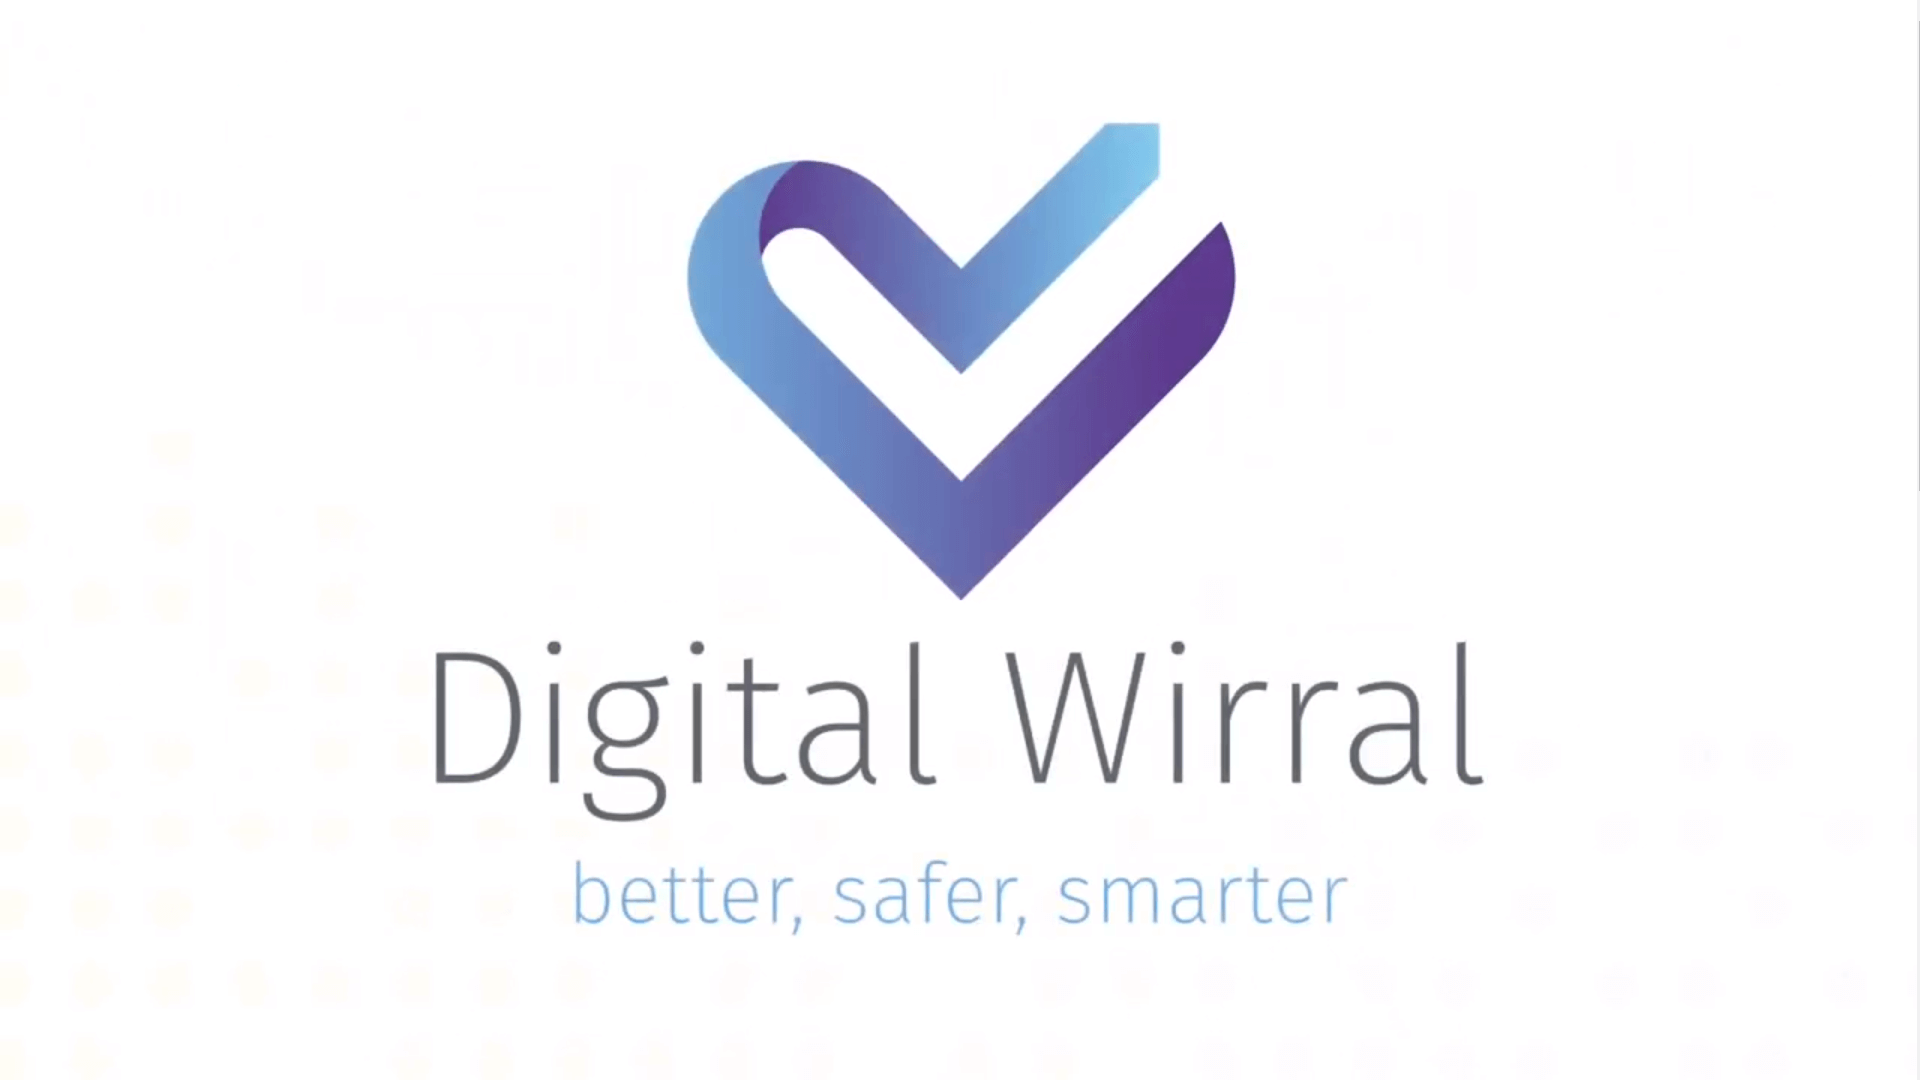 Digital Wirral